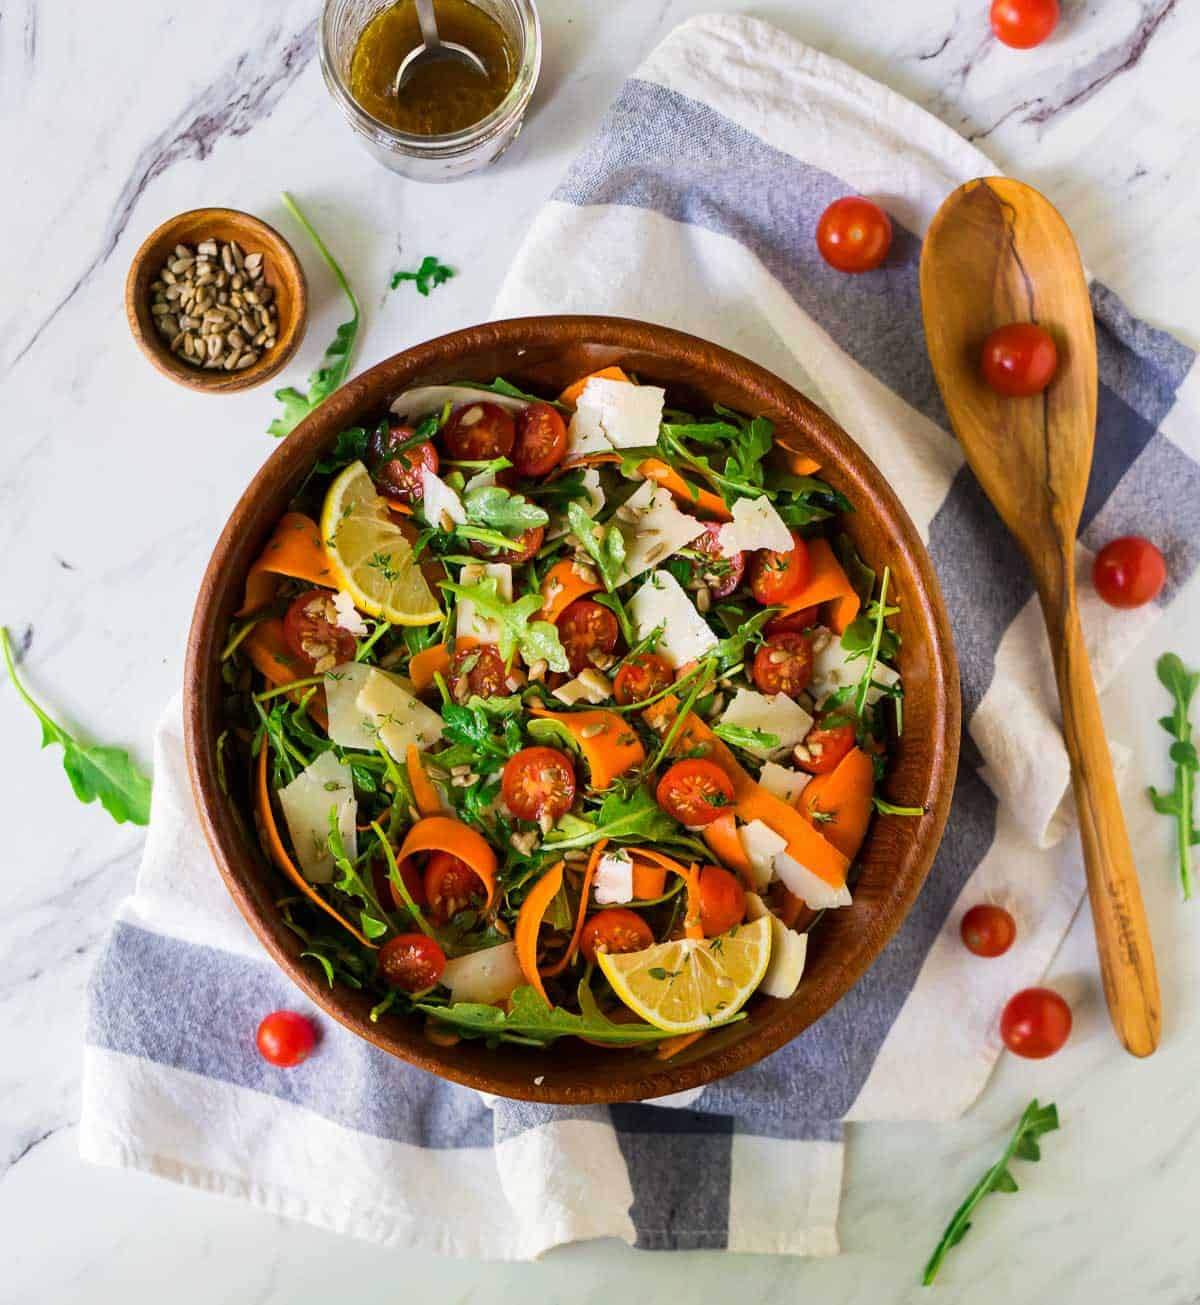 A bowl of arugula salad with tomatoes, carrots, and Parmesan